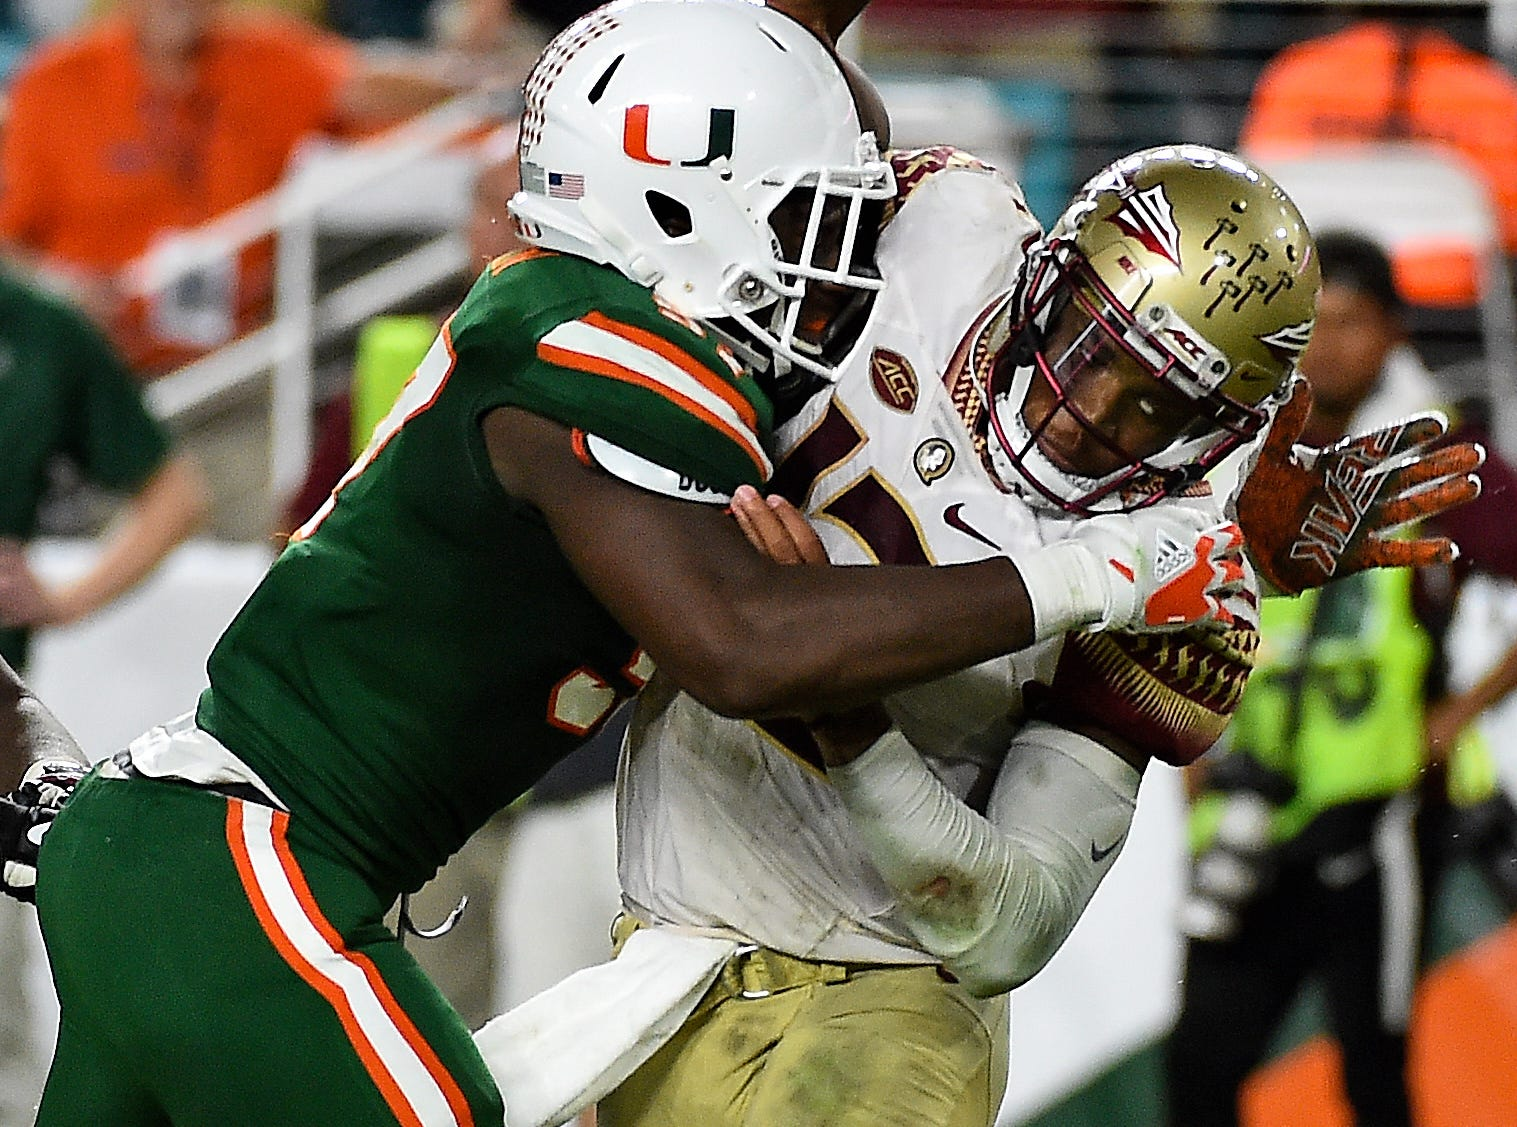 Oct 6, 2018; Miami Gardens, FL, USA; Miami Hurricanes defensive lineman Jonathan Garvin (97) pressures Florida State Seminoles quarterback Deondre Francois (12) during the second half at Hard Rock Stadium. Mandatory Credit: Jasen Vinlove-USA TODAY Sports